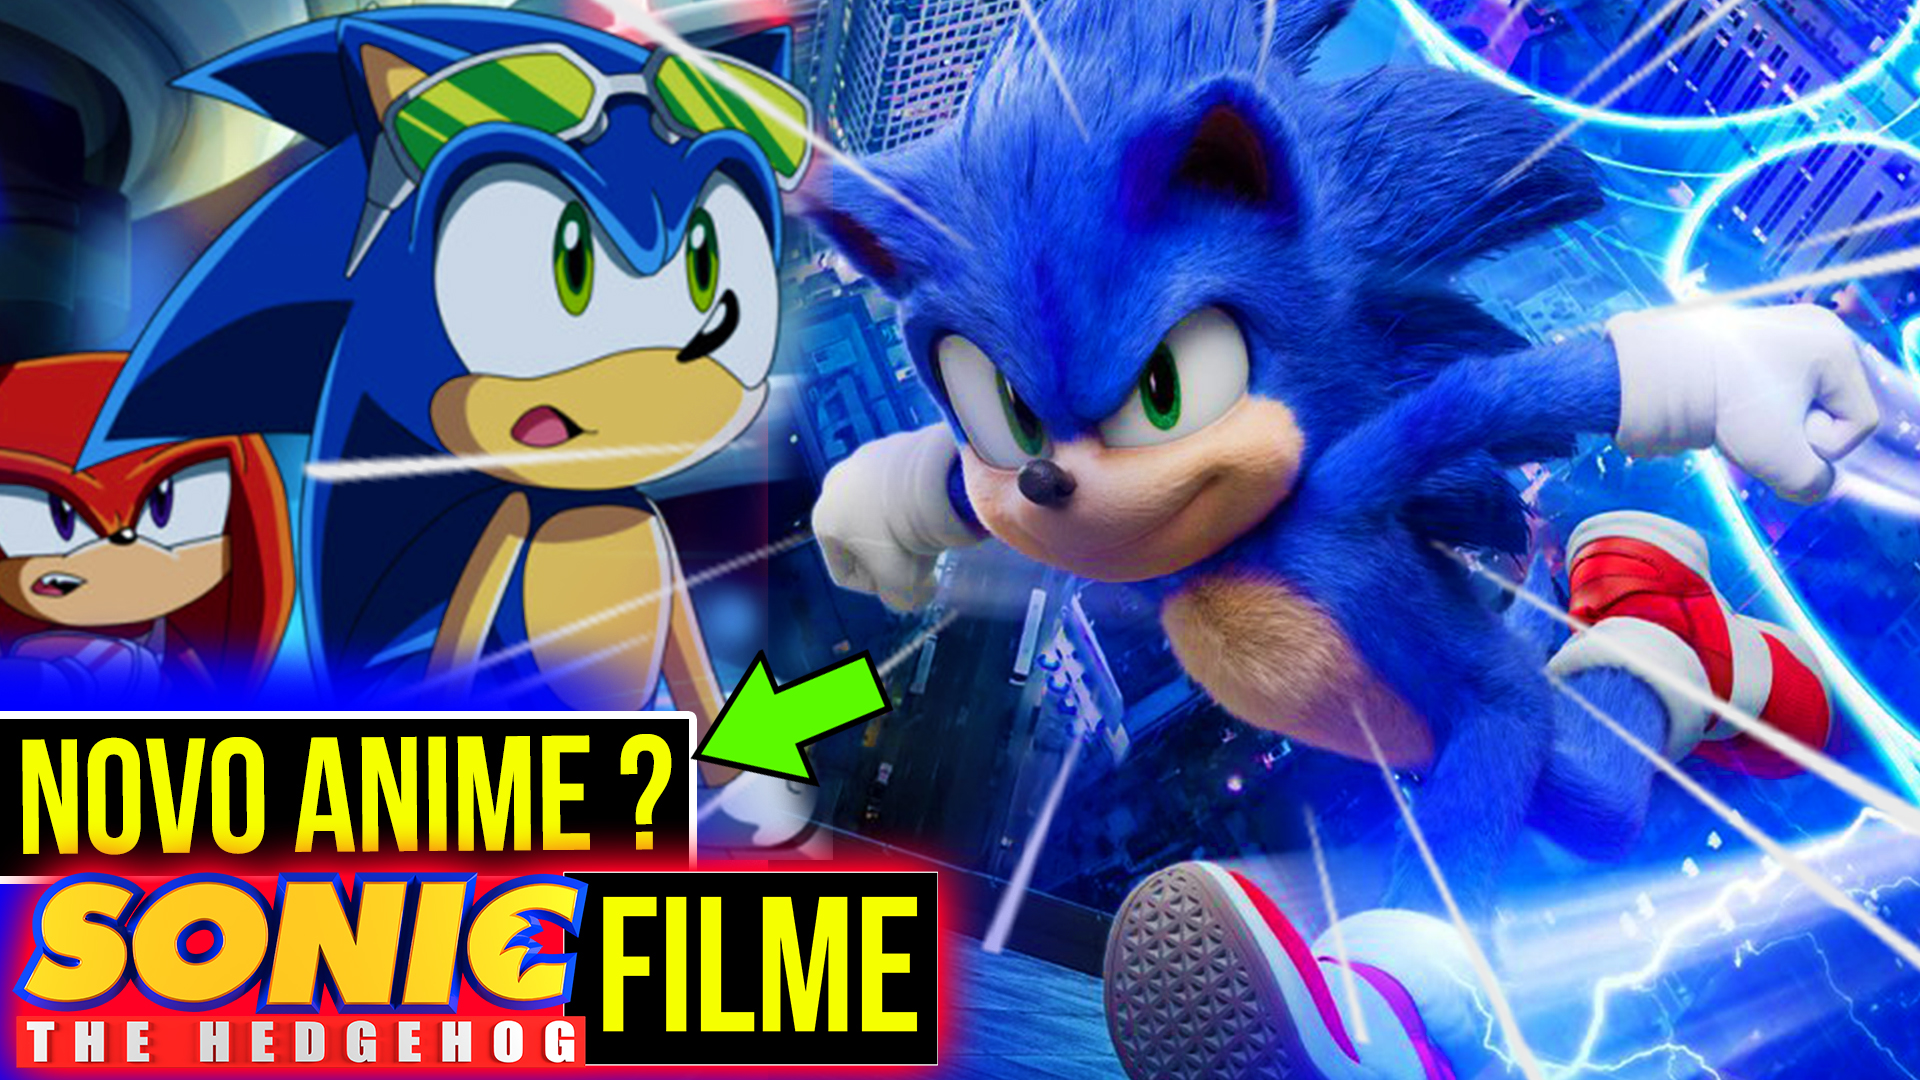 Sonic movie novo anime sonic x